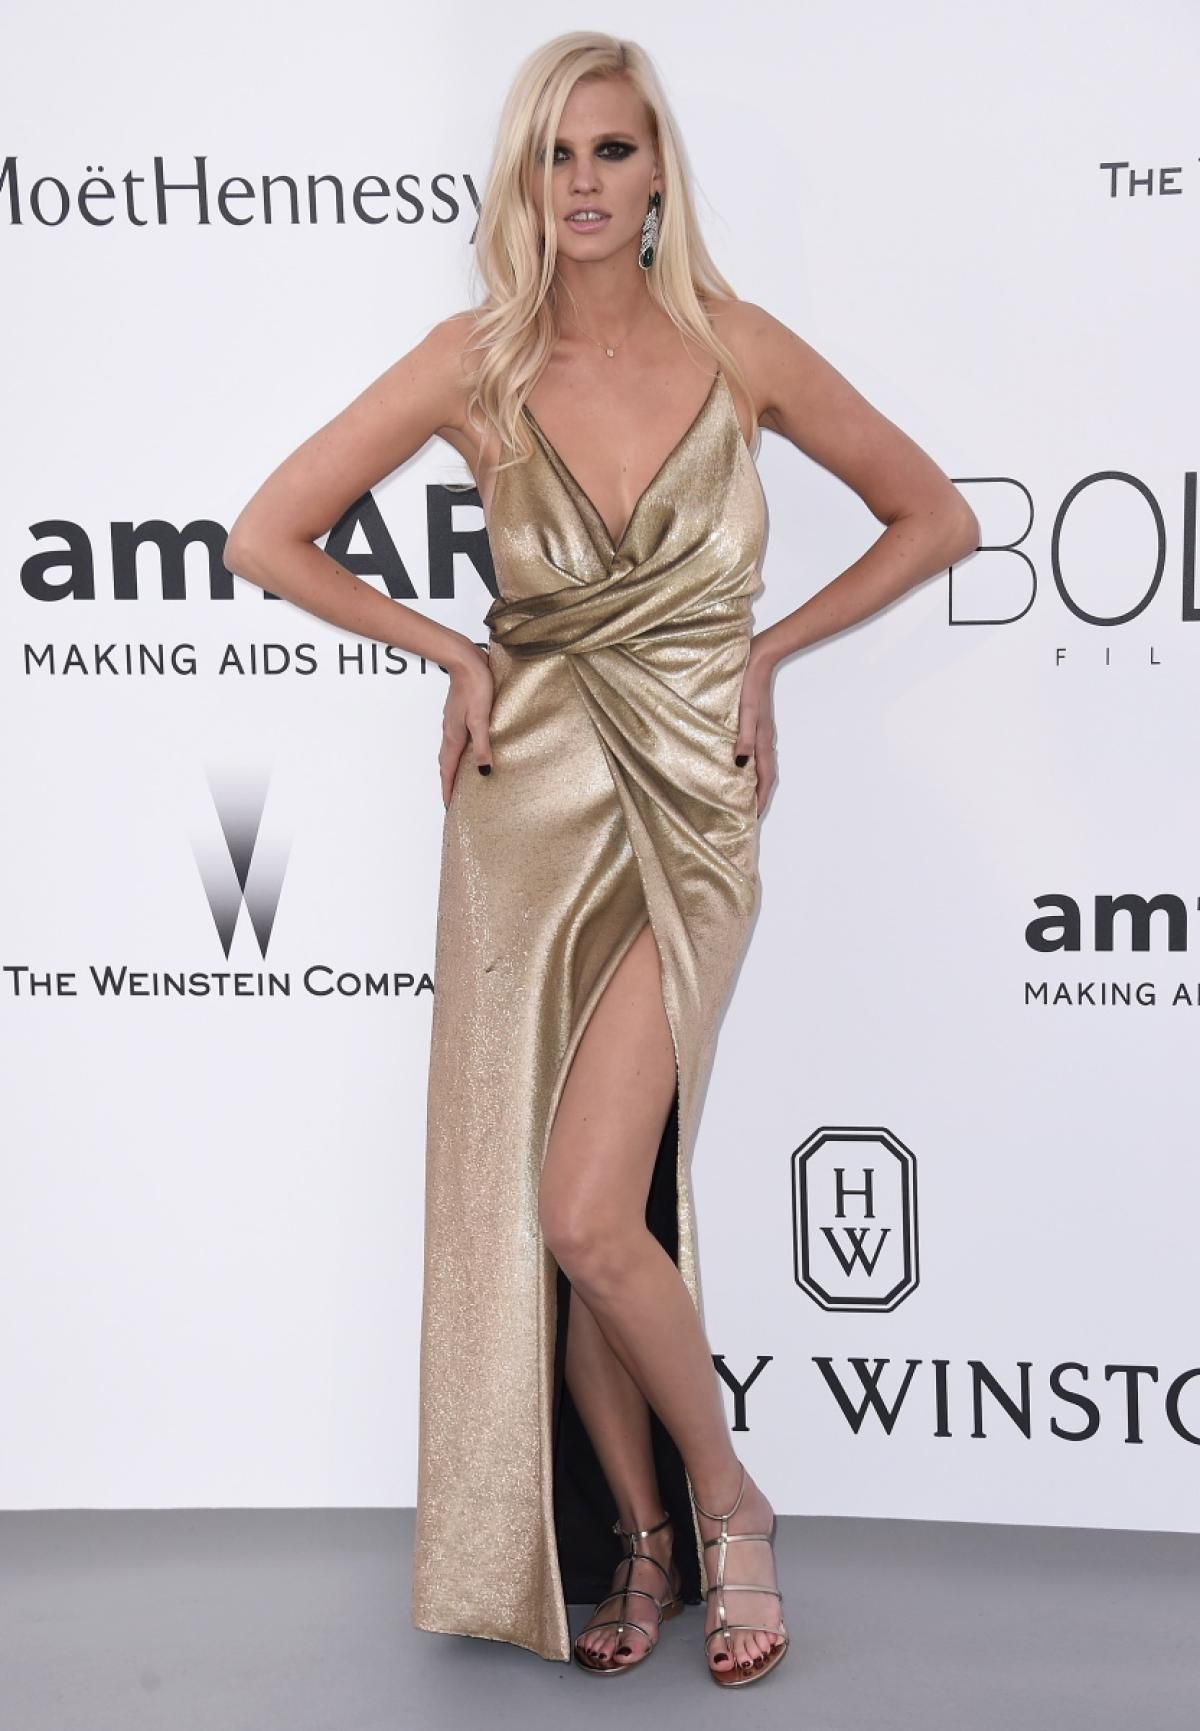 lara-stone-at-amfar-s-2015-cinema-against-aids-gala-in-cap-d-antibes_1